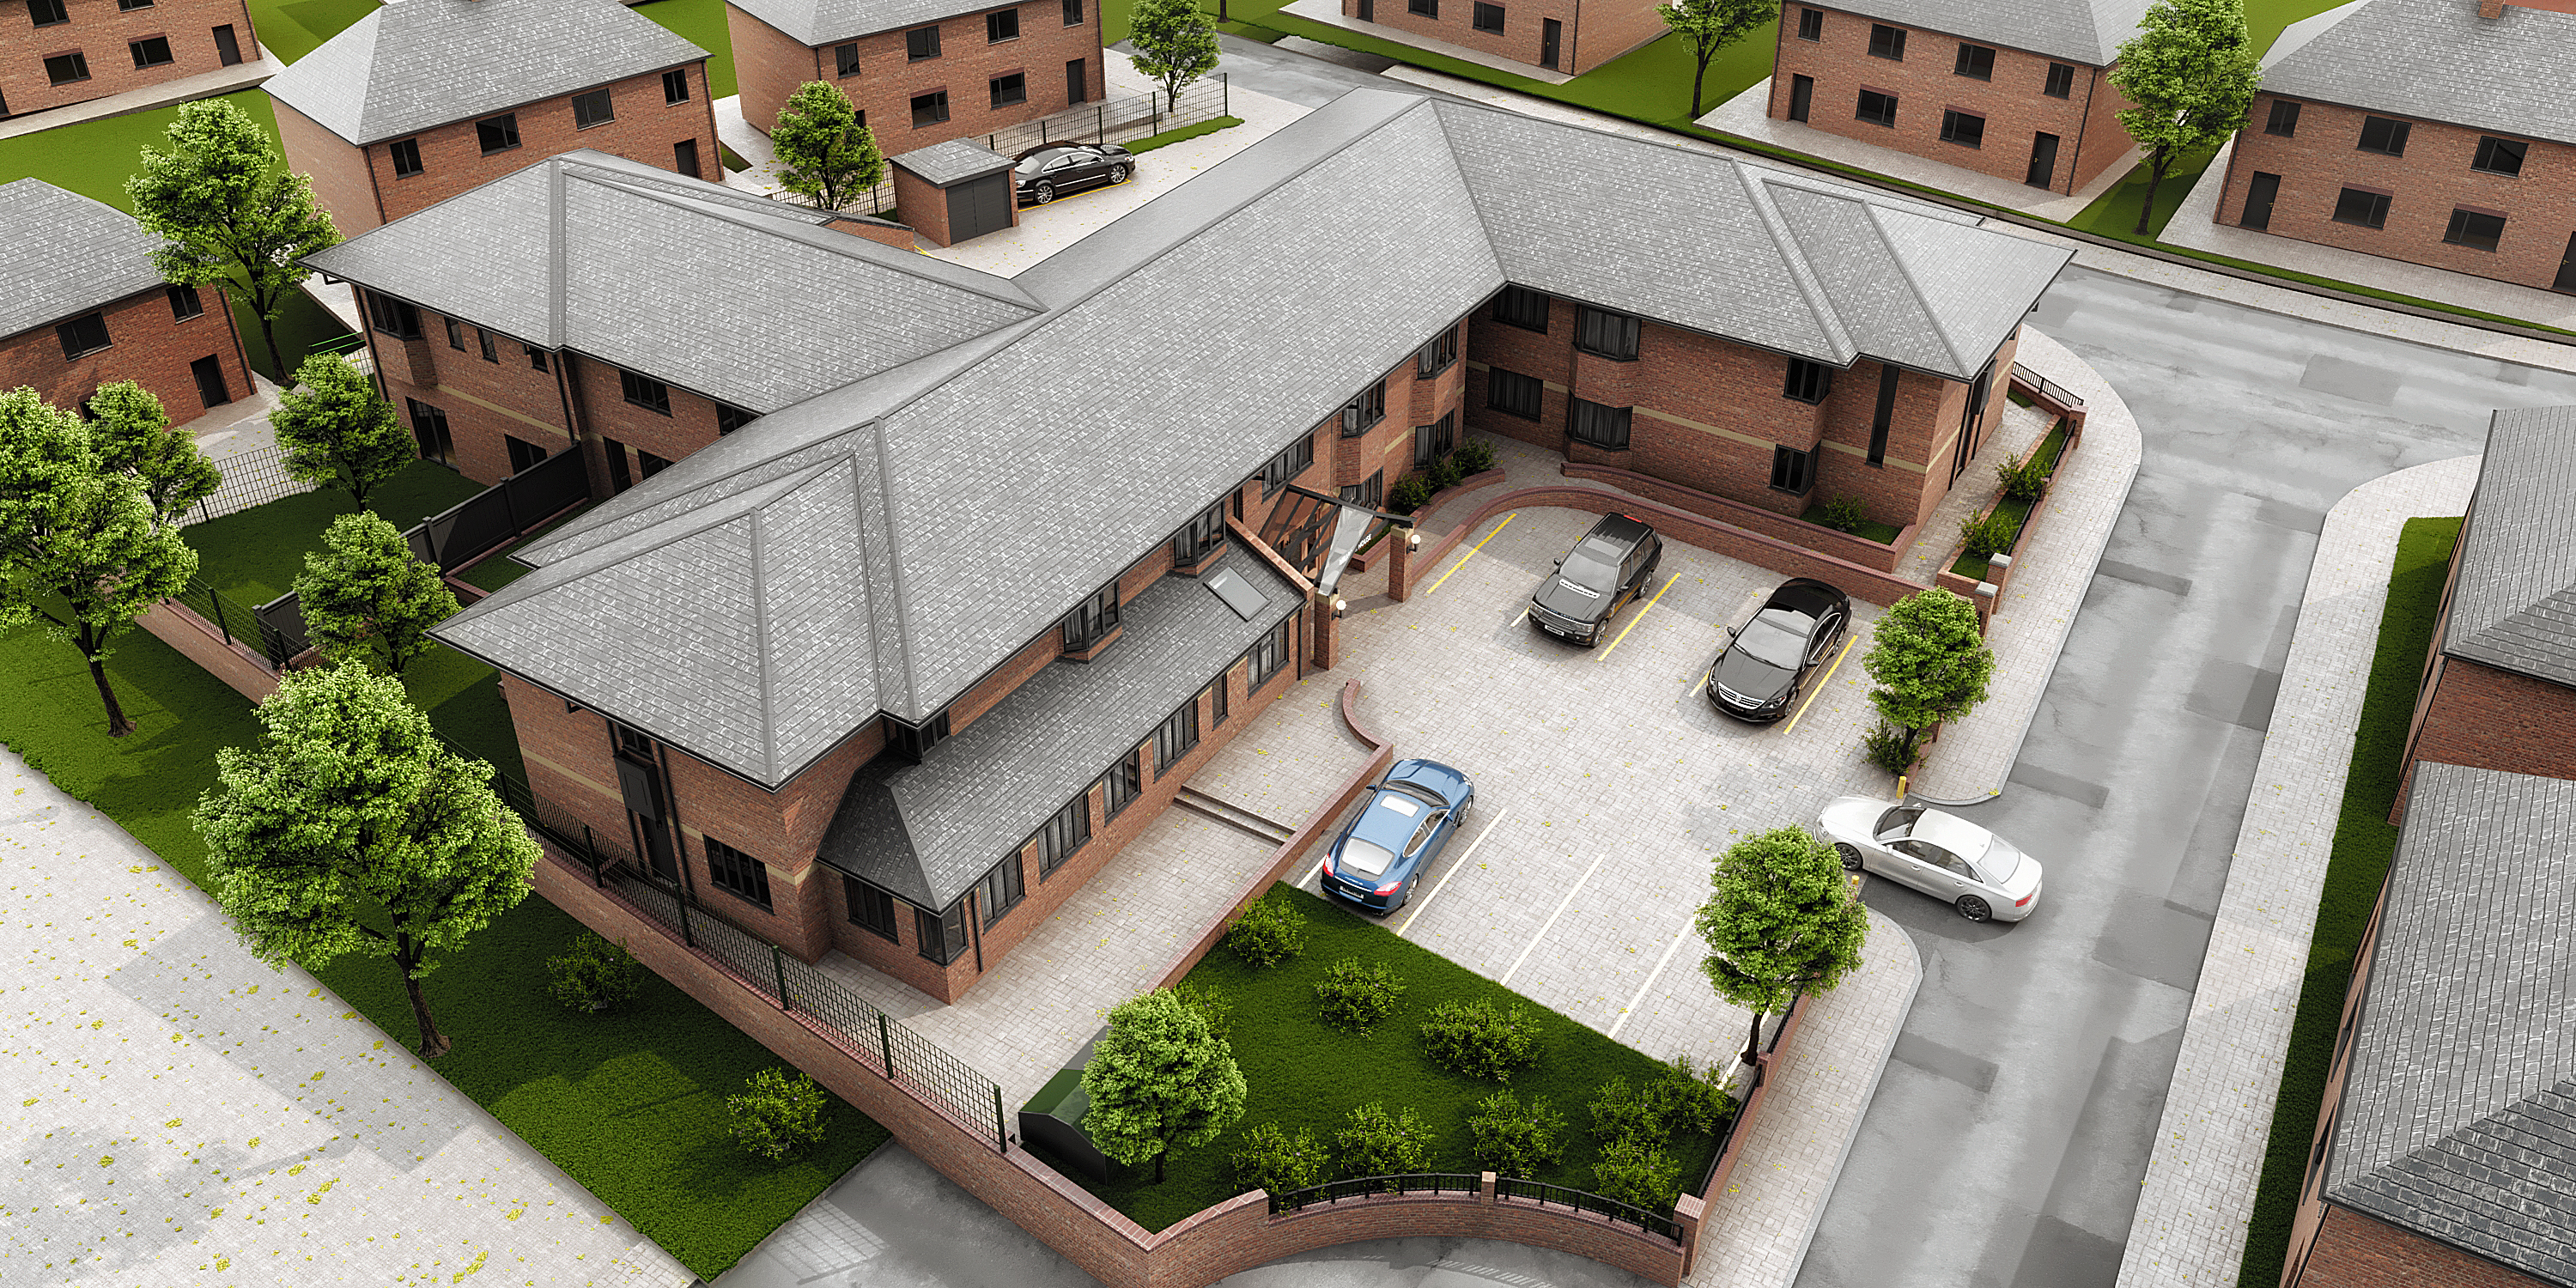 FORMER CARE HOME TO BE TURNED INTO FLATS